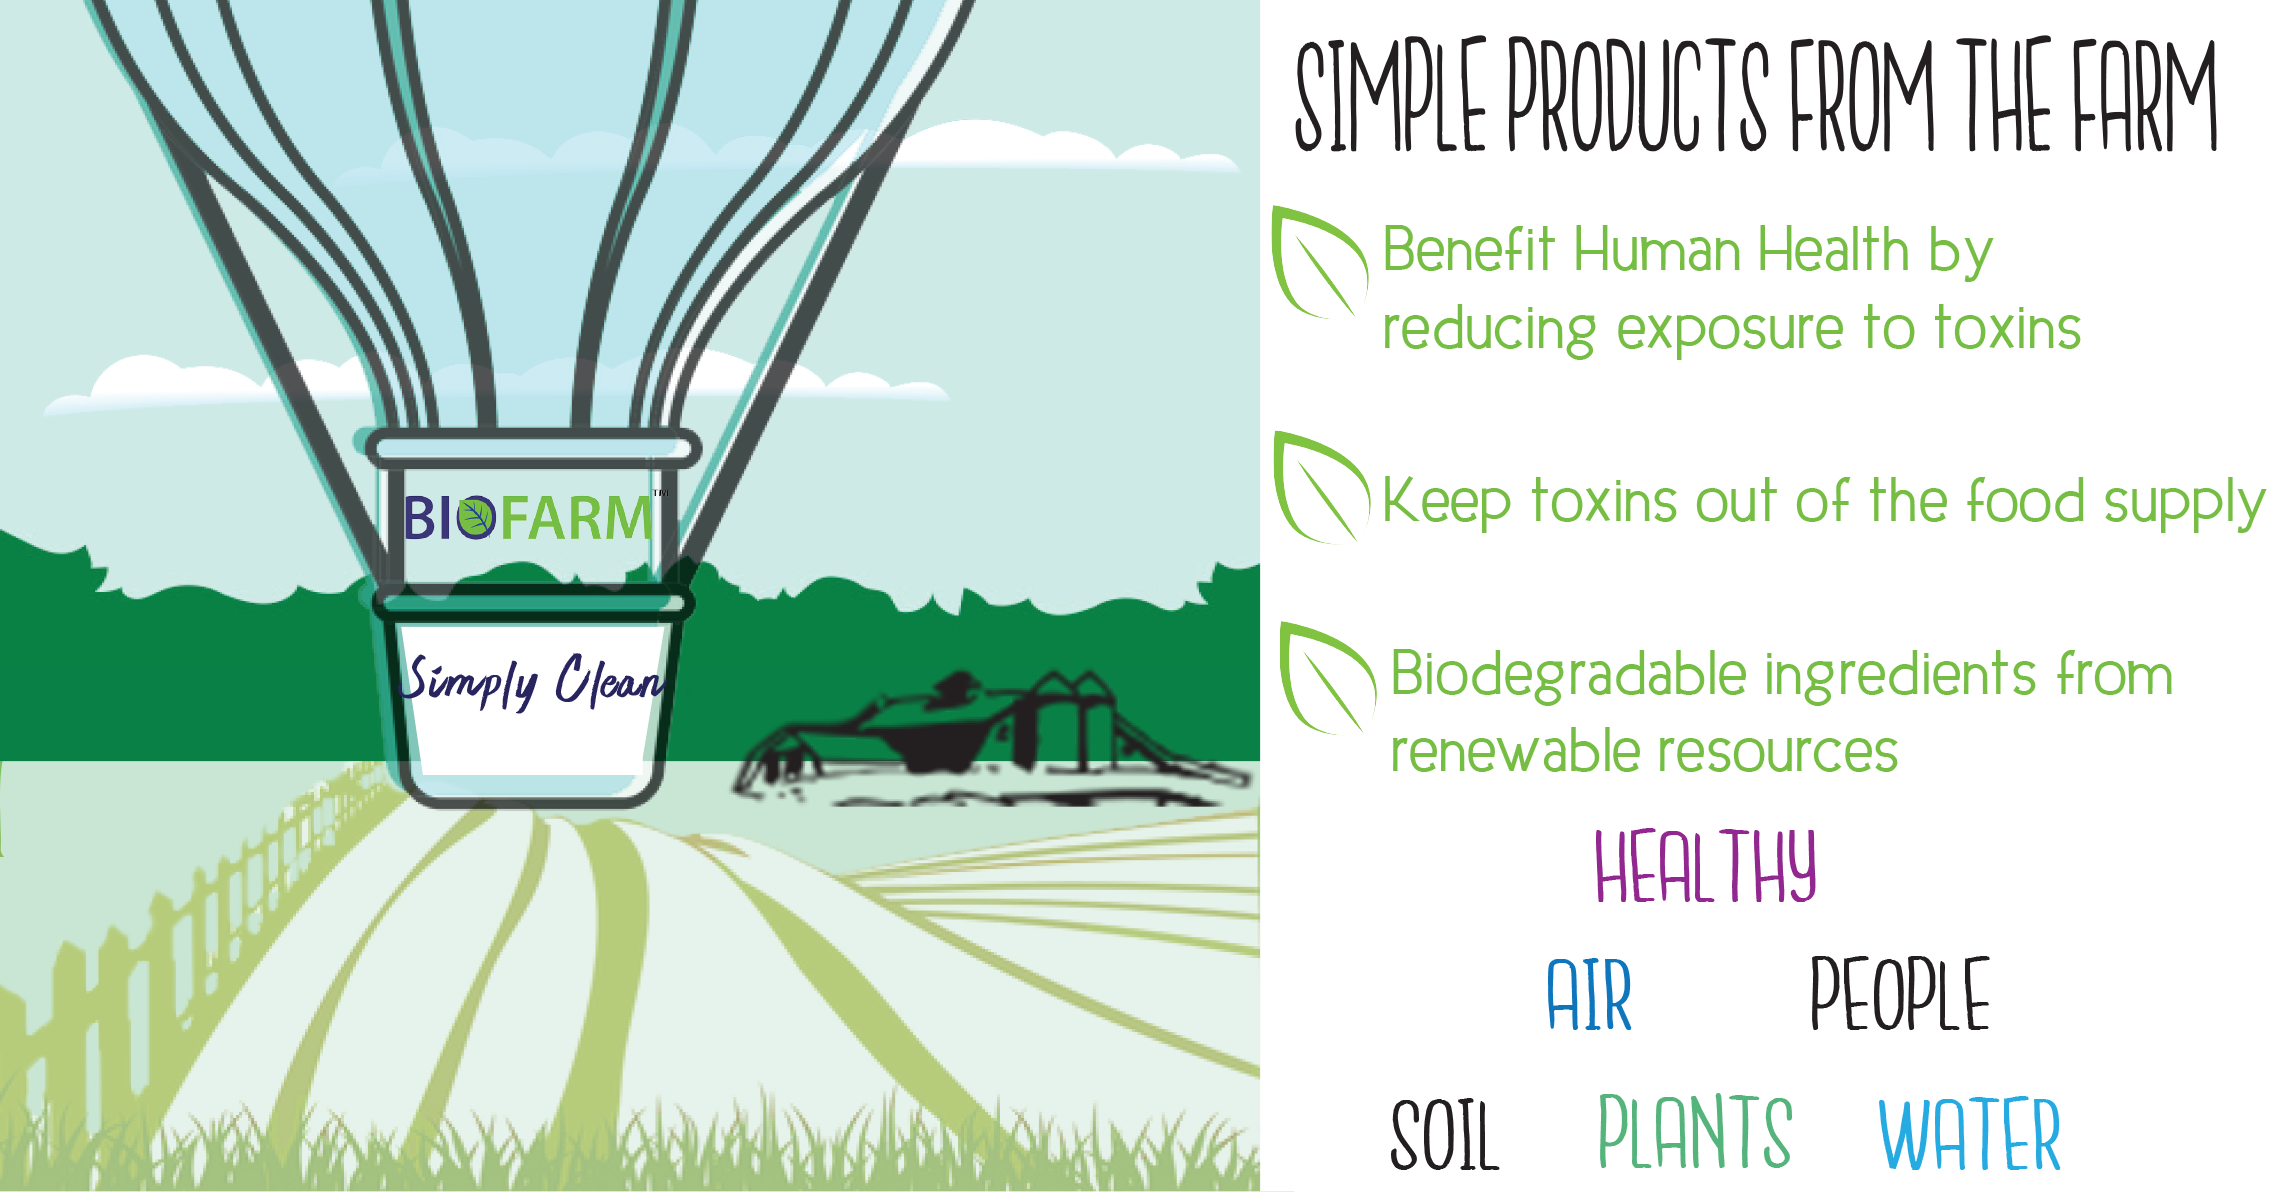 biofarm-simply-clean-logo-new.png